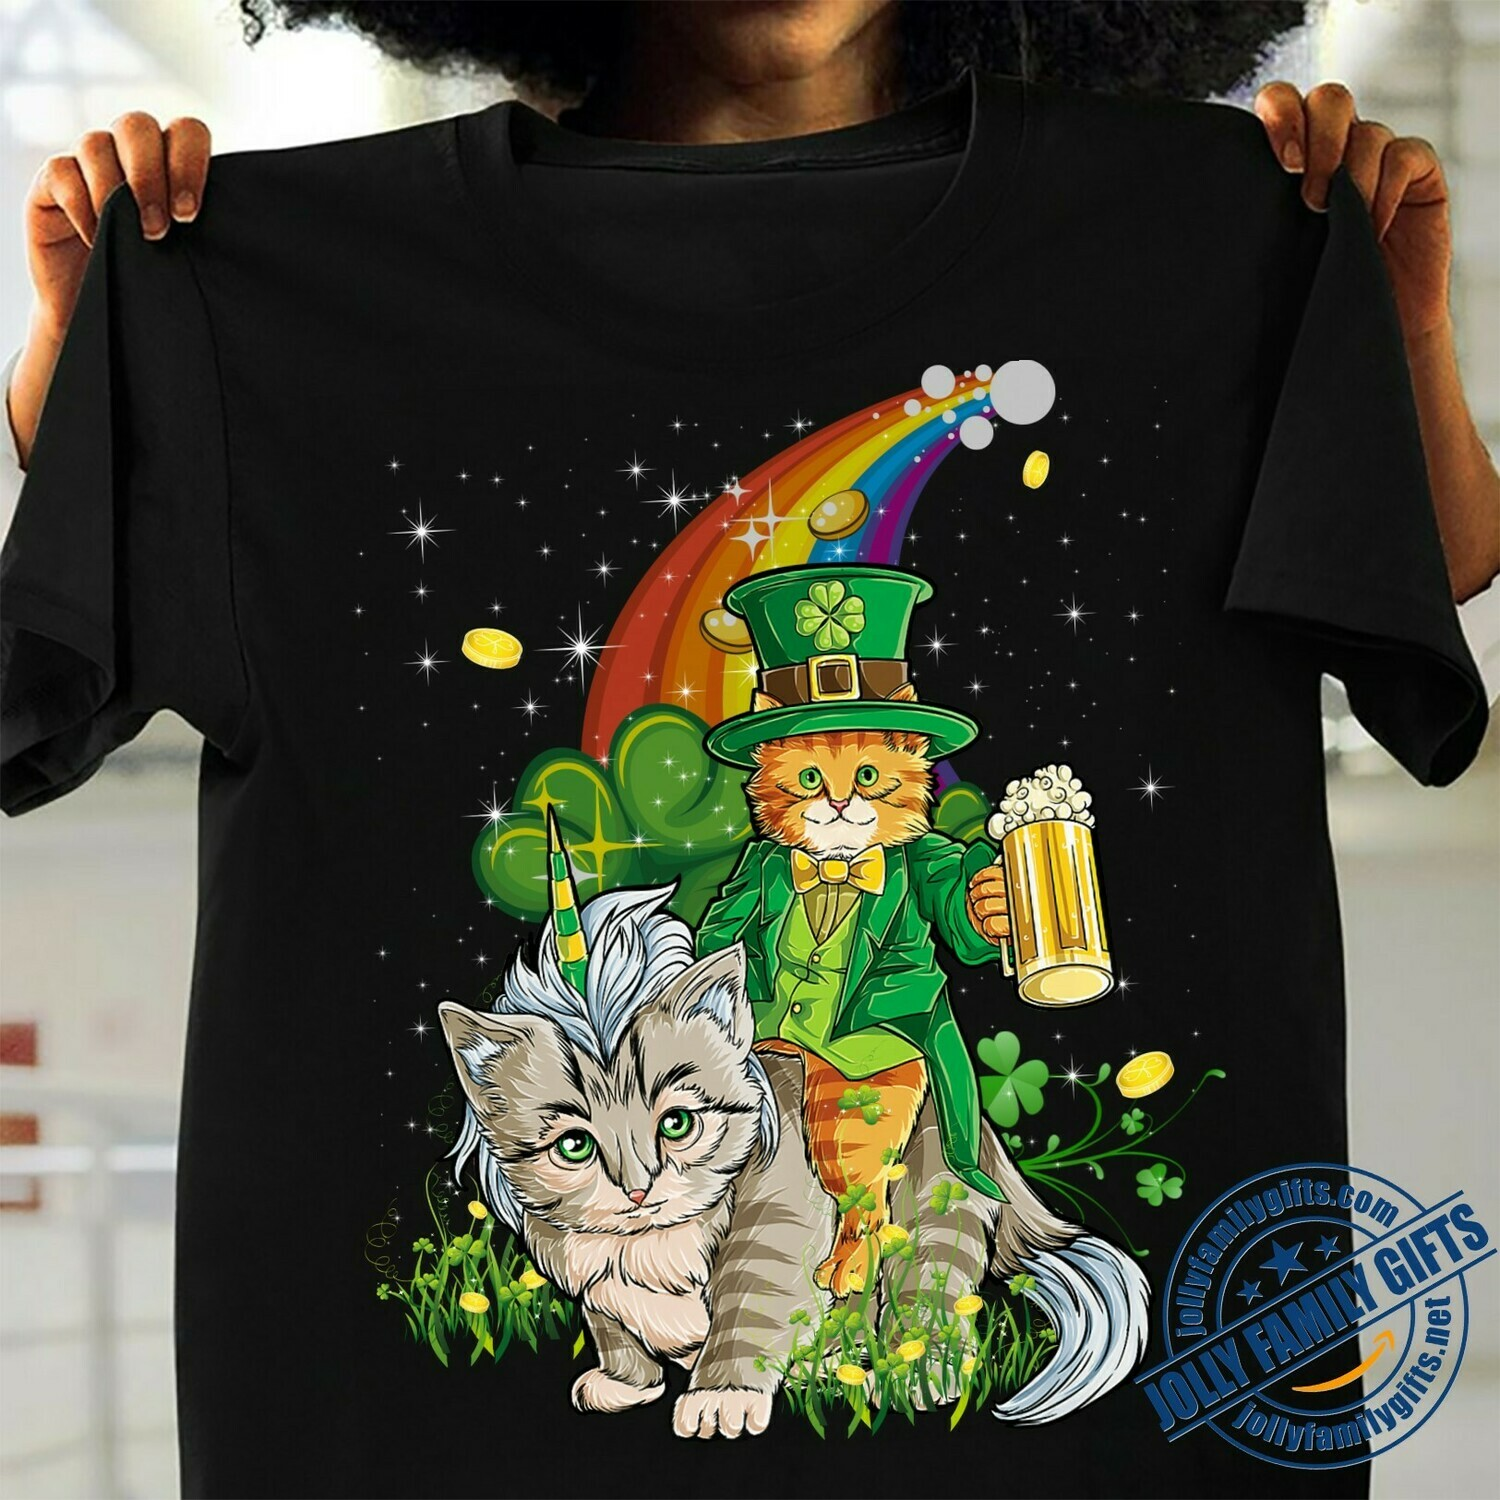 Cats Caticorn Leprechaun Paddy's Day Happy St. Catricks Day My Cat Is My Lucky Charm Happy Patrick's Day Gift for Cat Lovers Dad Mom  Unisex T-Shirt Hoodie Sweatshirt Sweater Plus Size for Ladies